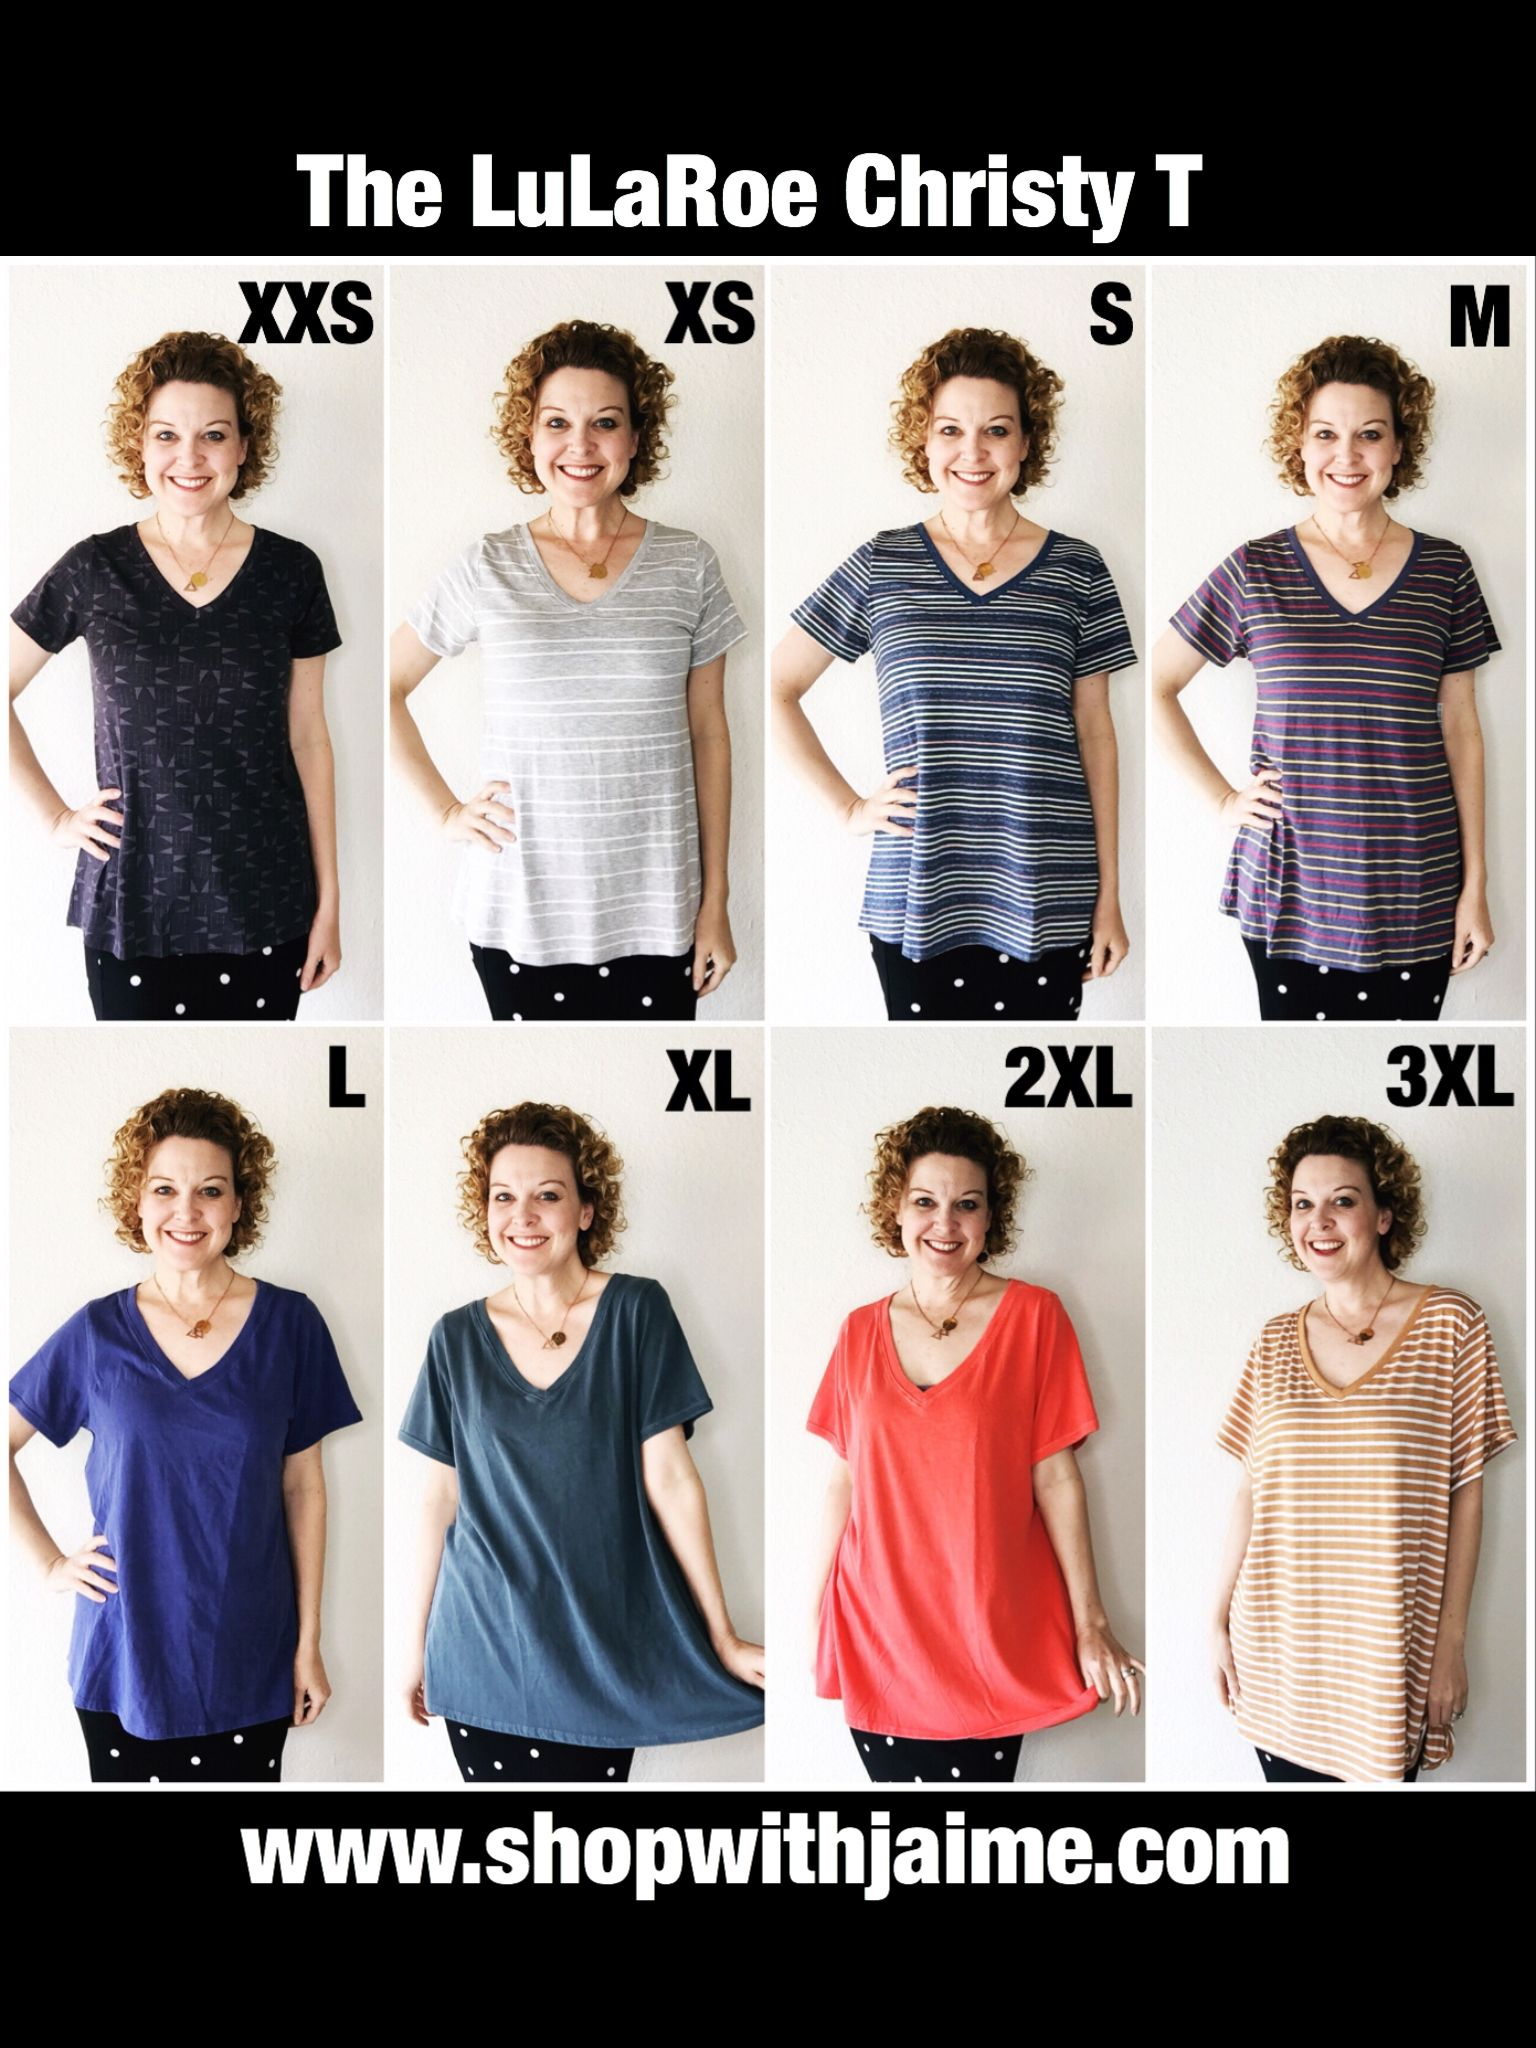 adf303667 LuLaRoe Christy T size comparison chart    Christy Tee sizes    Christy V-Neck  T fit    I'm a size 4 and here's how they compare. www.shopwithjaime.com ...